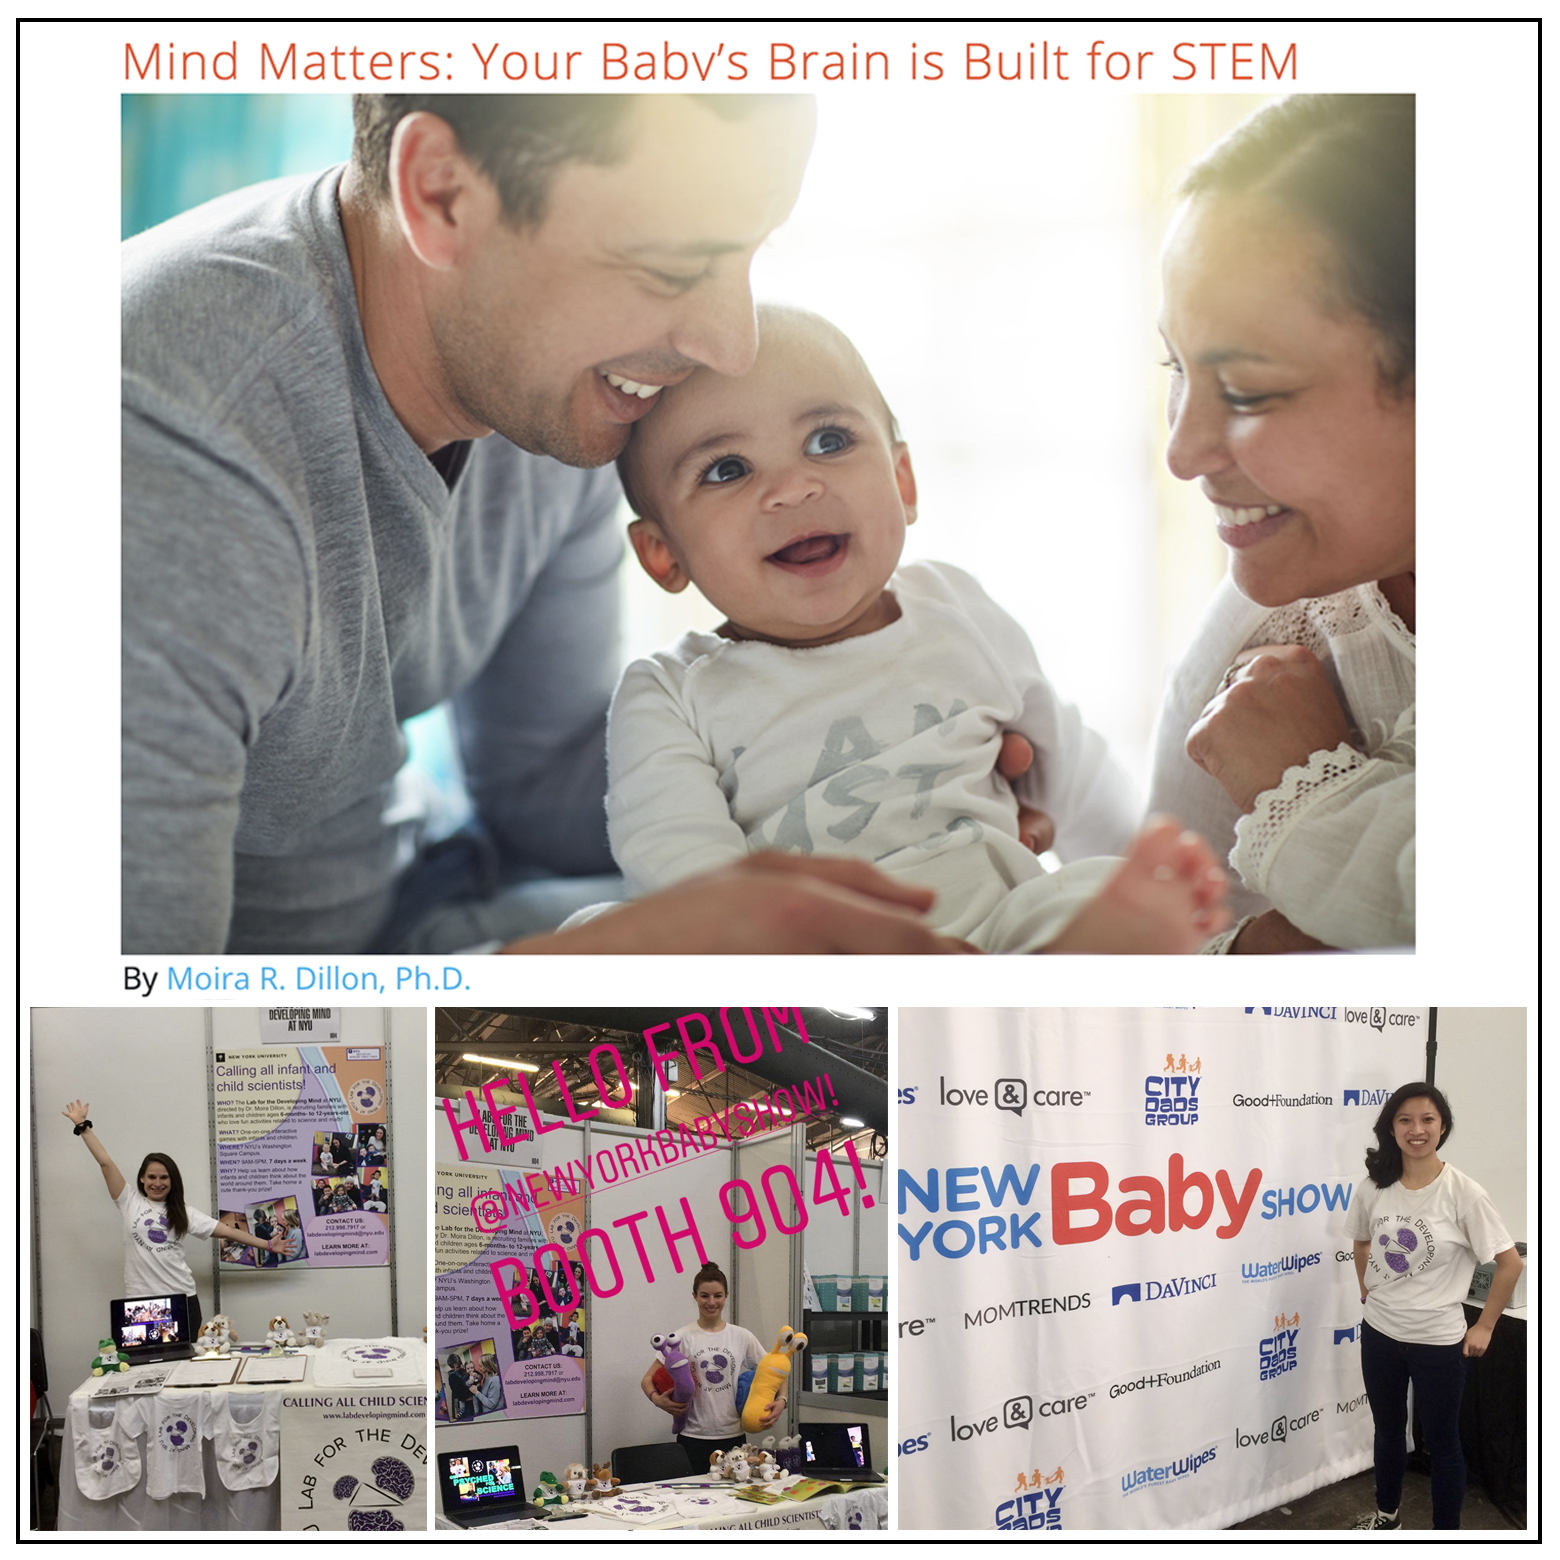 New York Baby show - May 2019Click here to read the article!